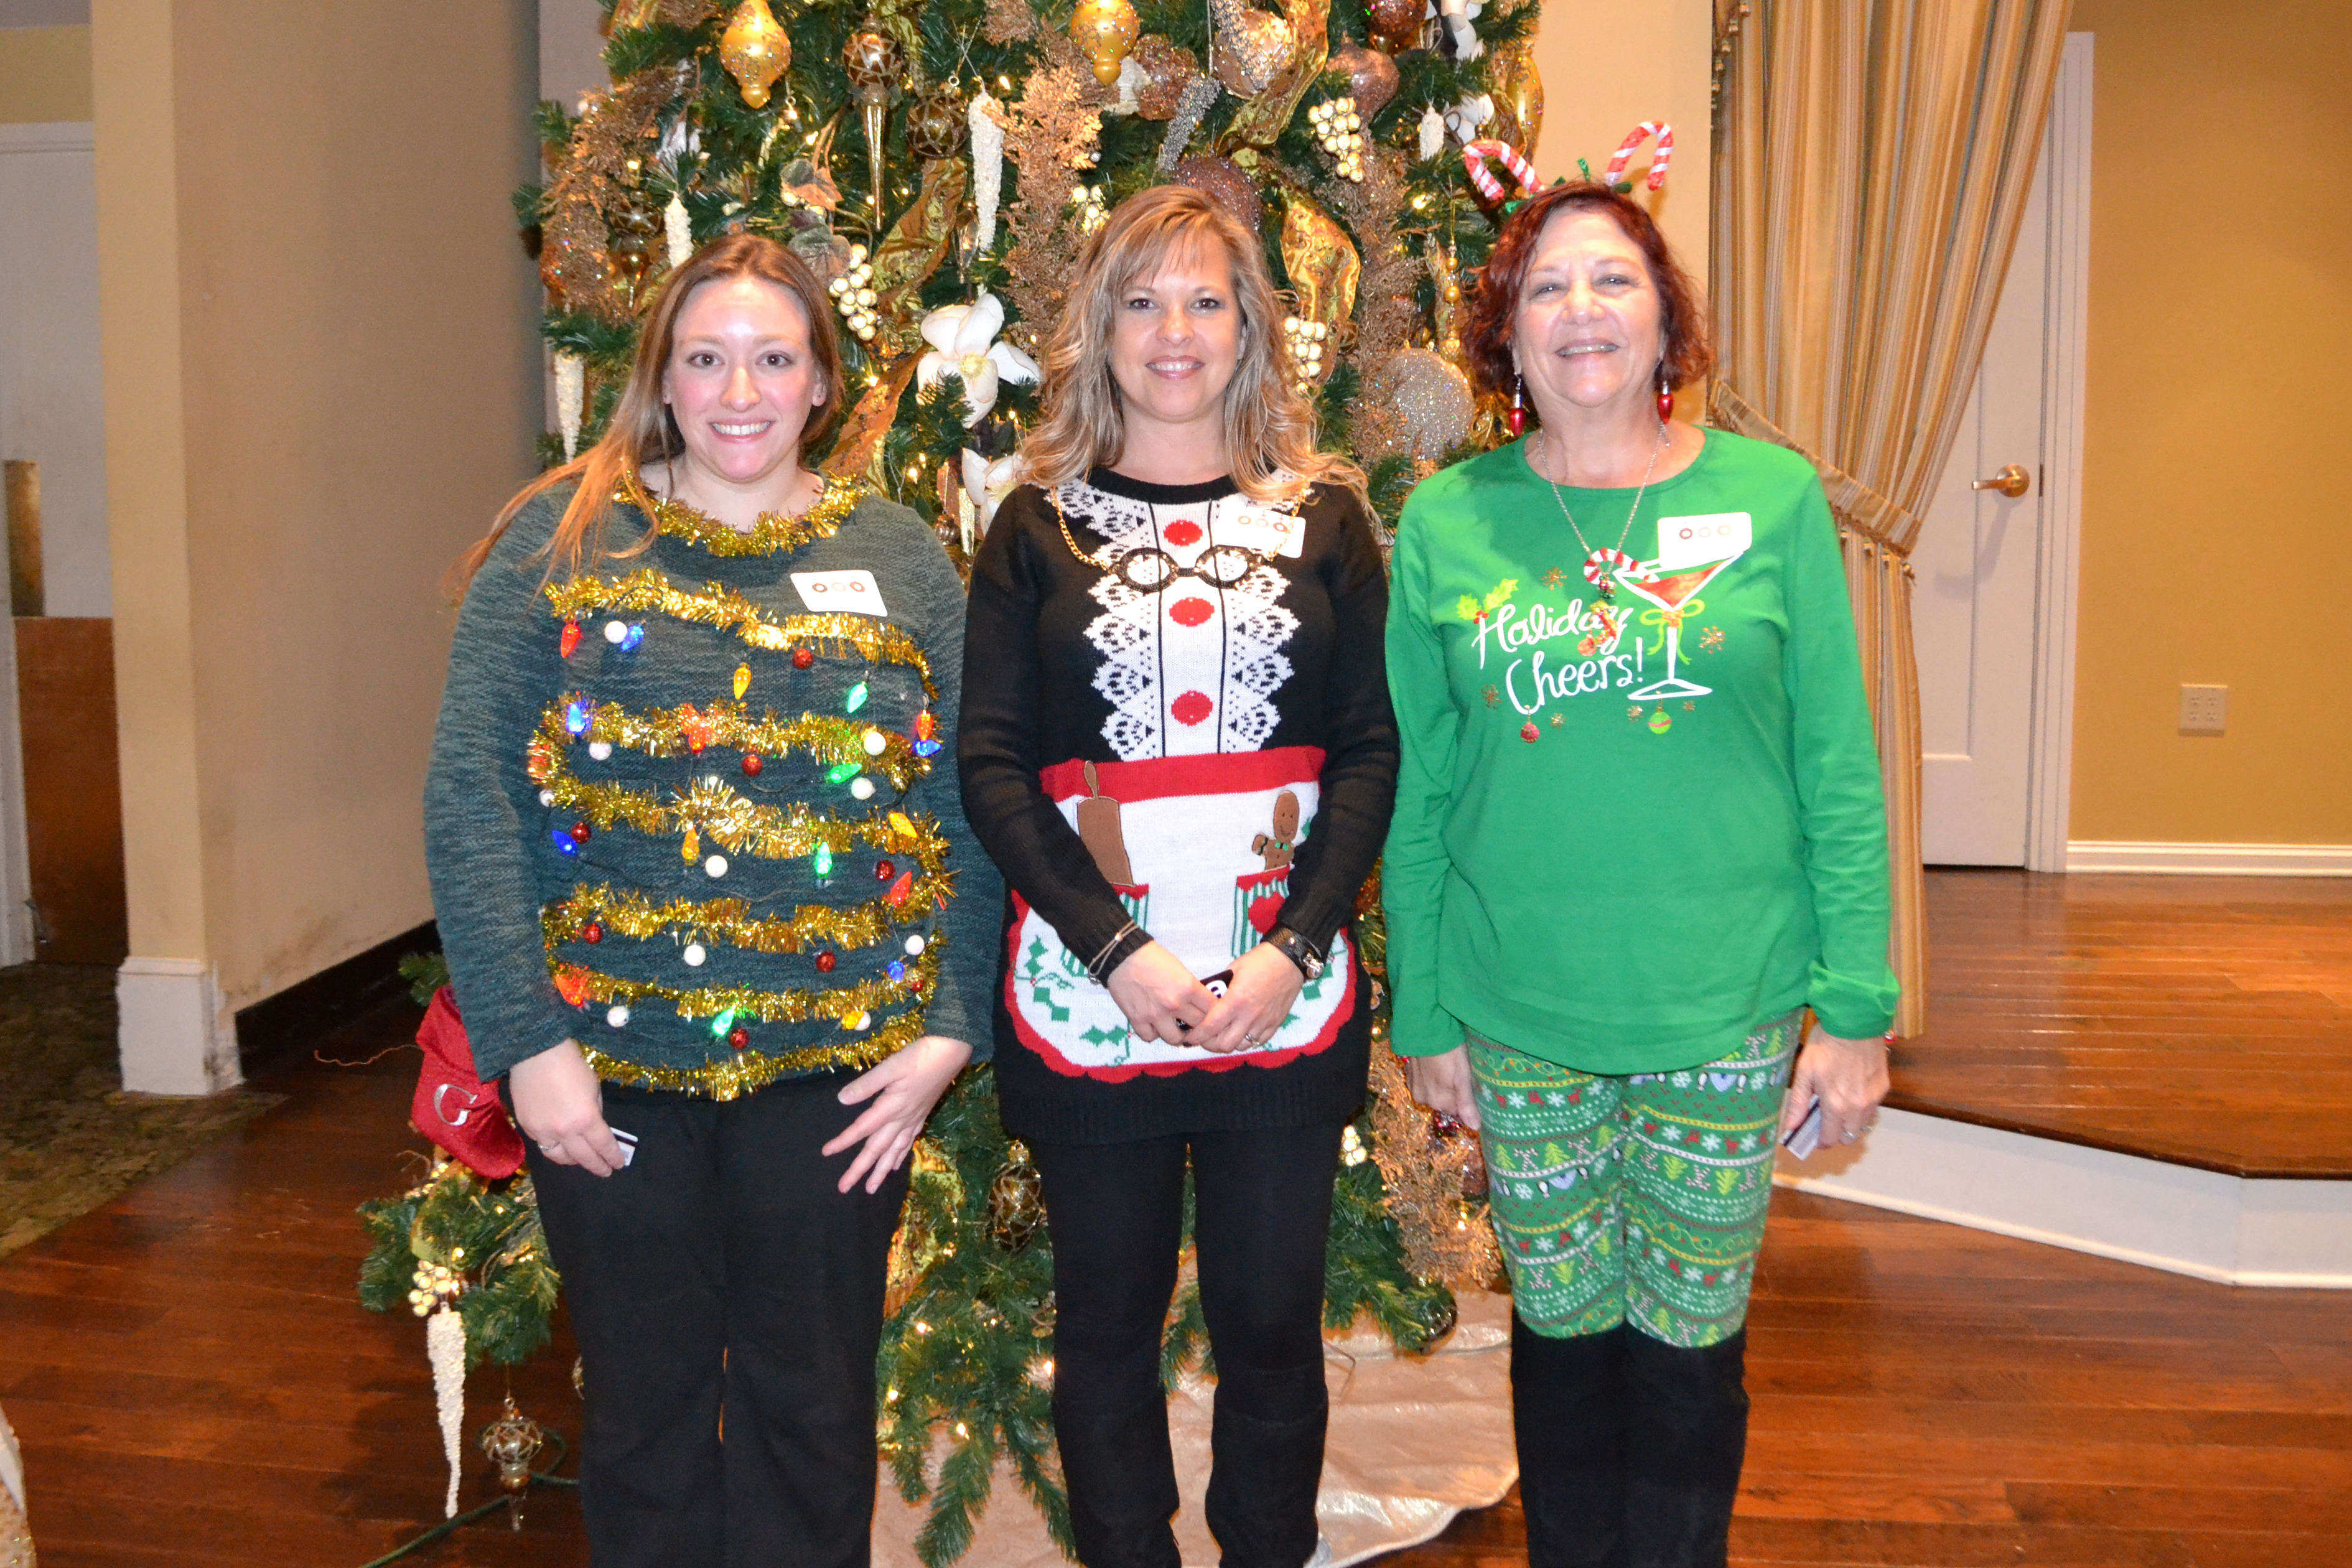 Photo of Ugly Sweater Contest WInners at the Bell Christmas Party